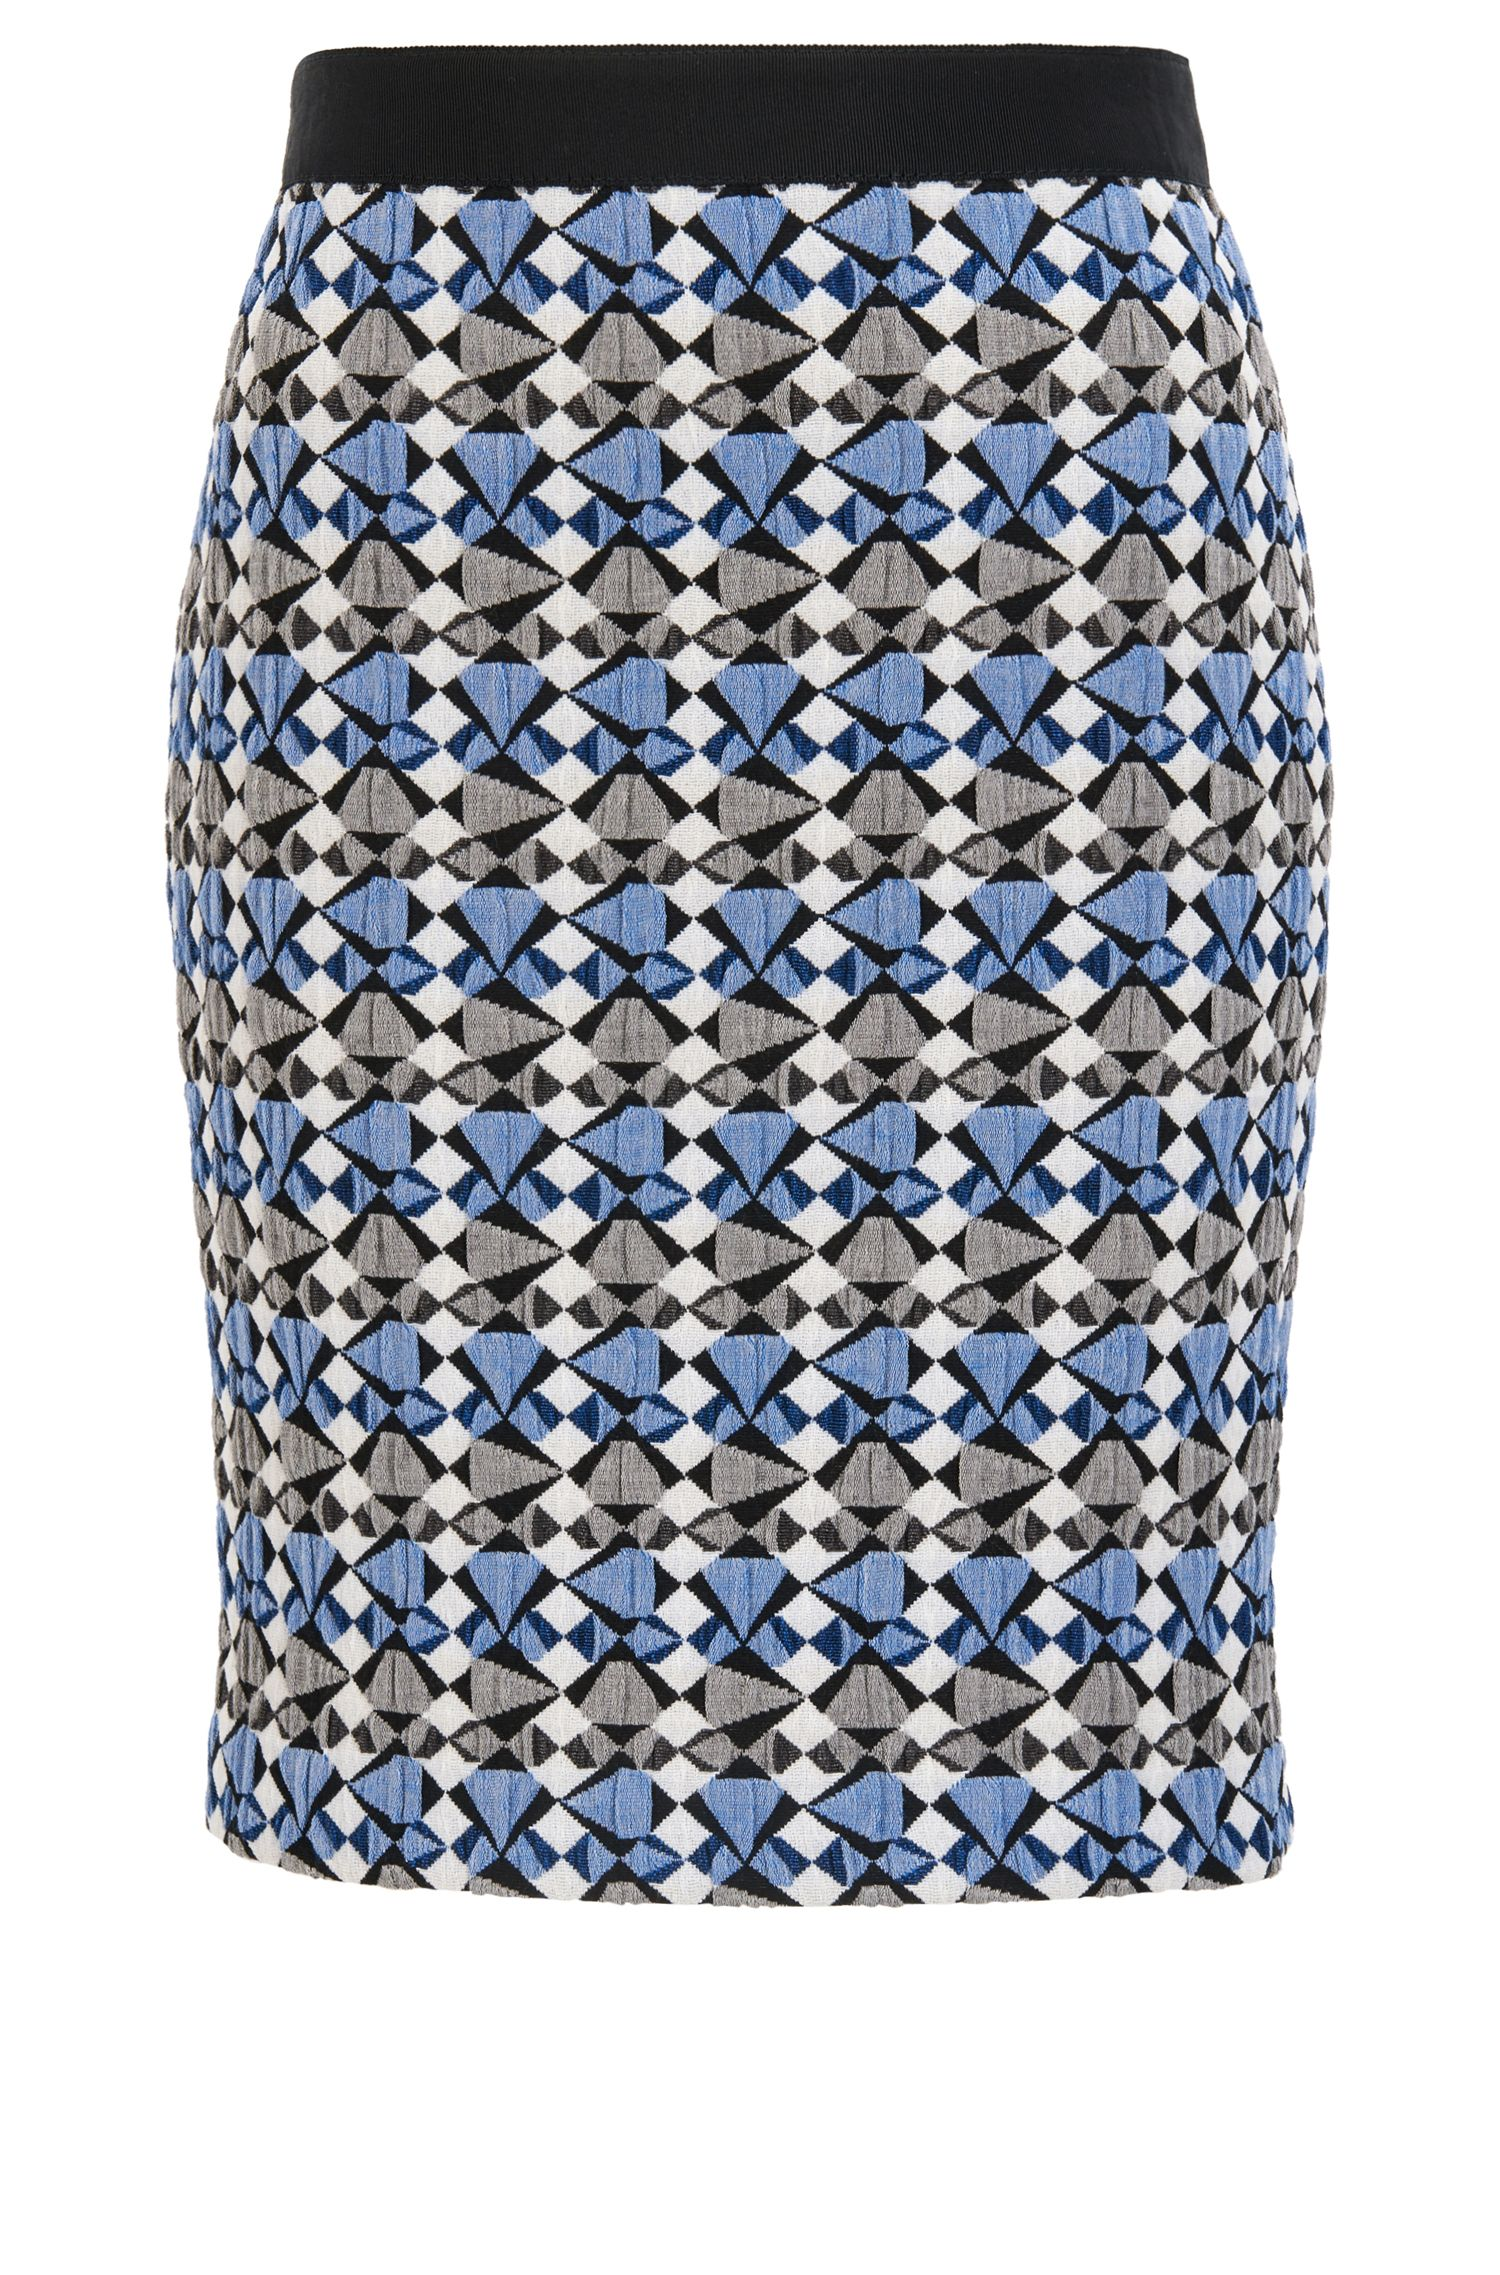 Pencil skirt in multicoloured stretch jacquard